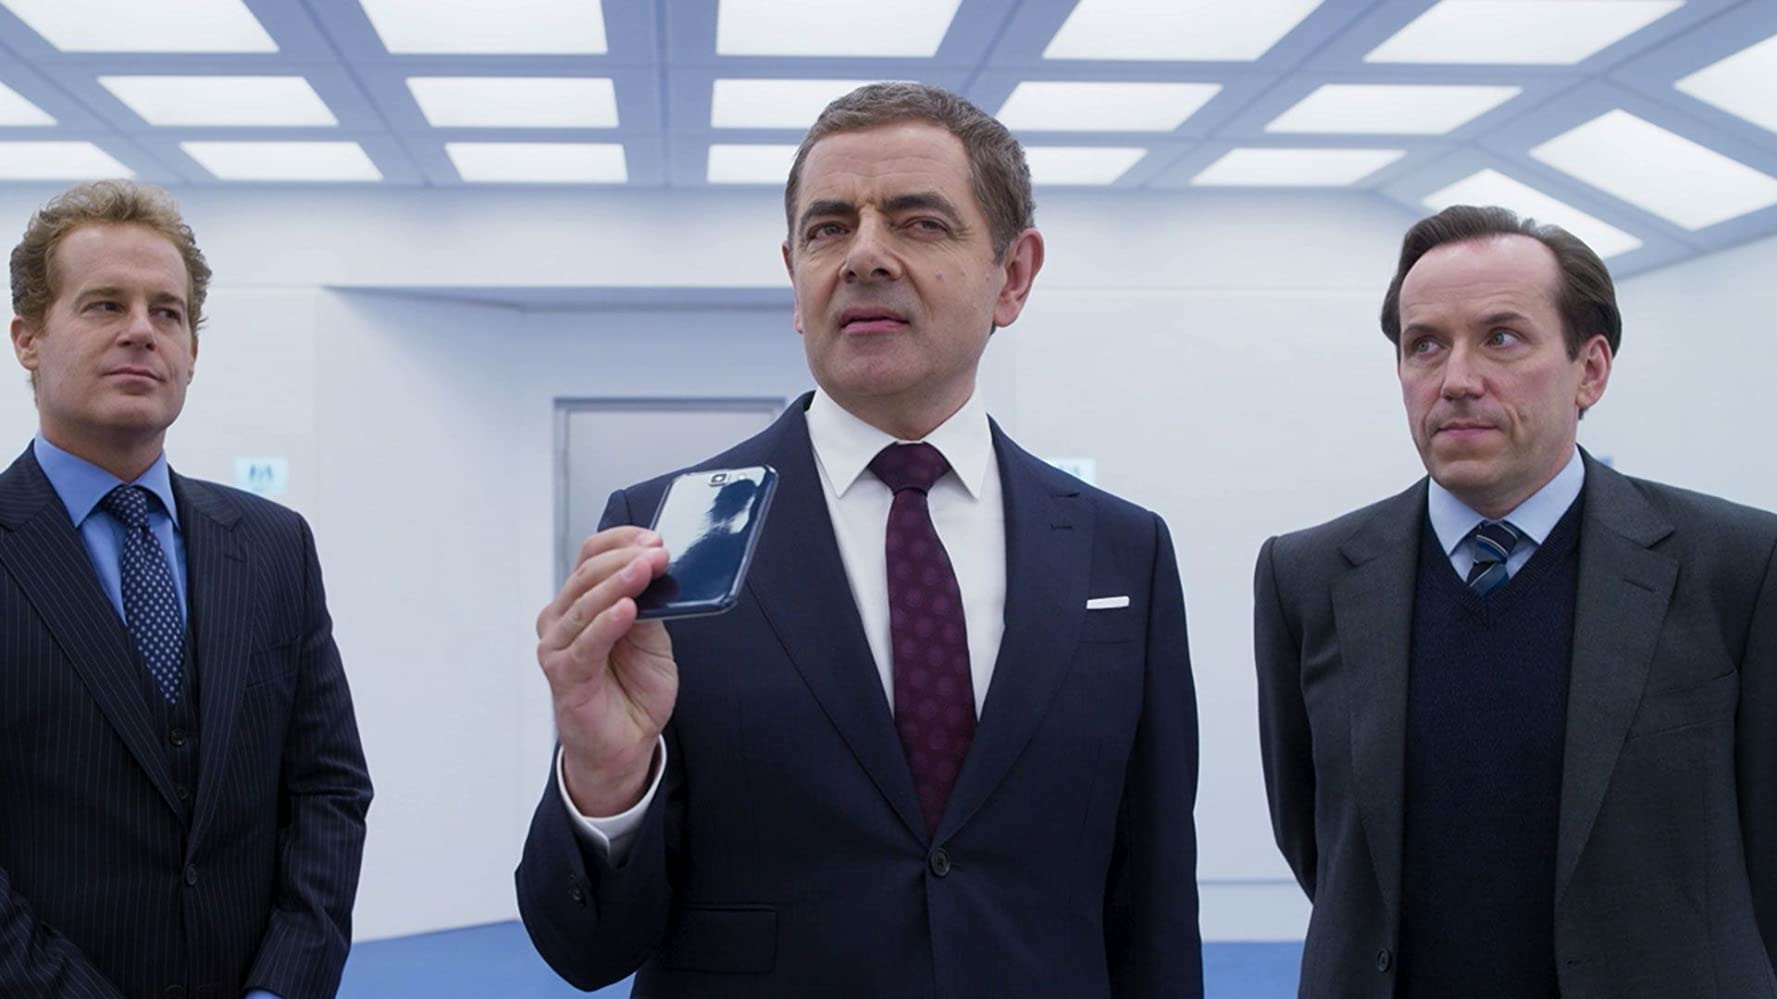 Rowan Atkinson, Adam James, and Ben Miller in Johnny English Strikes Again (2018)